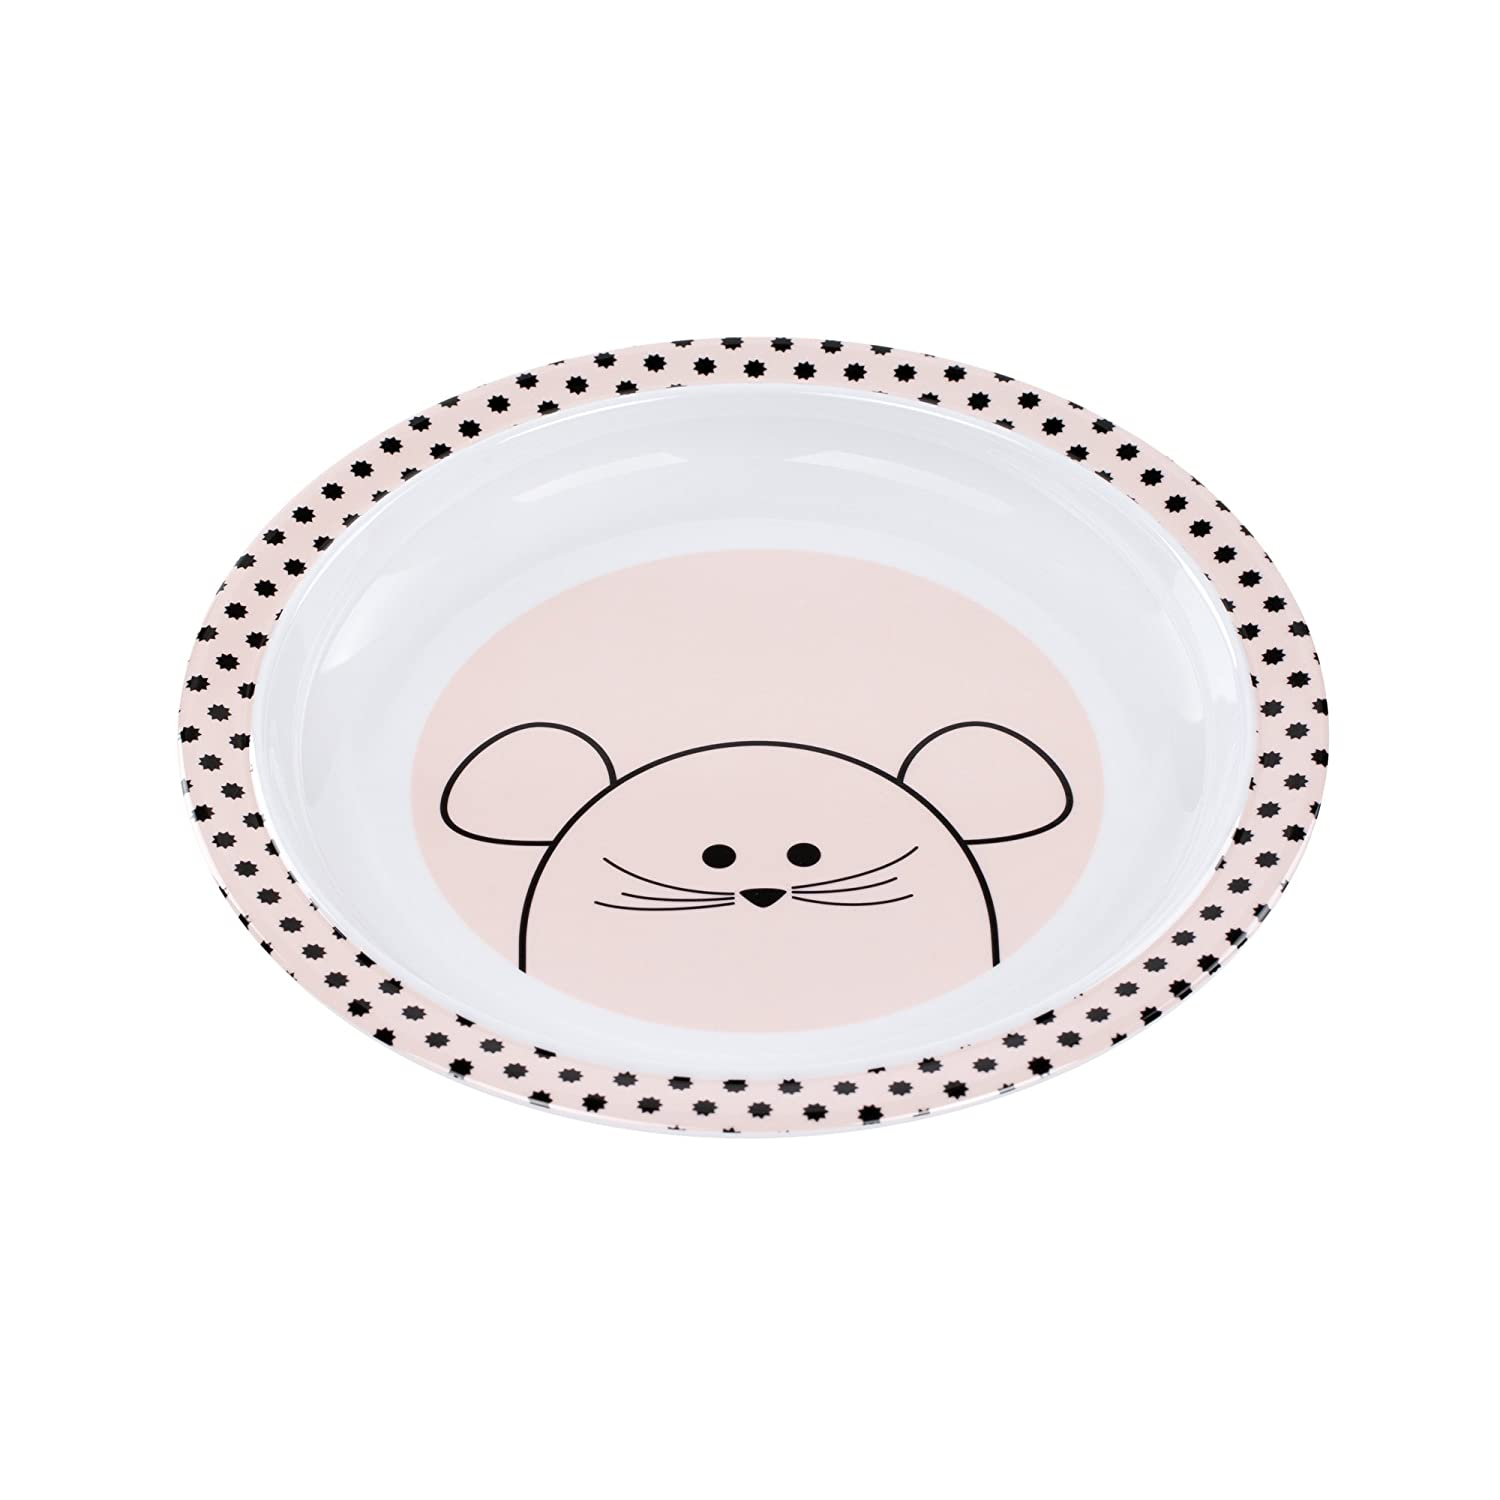 Lassig Kids Plate with Silicone, Mouse Lassig Baby 1310009725